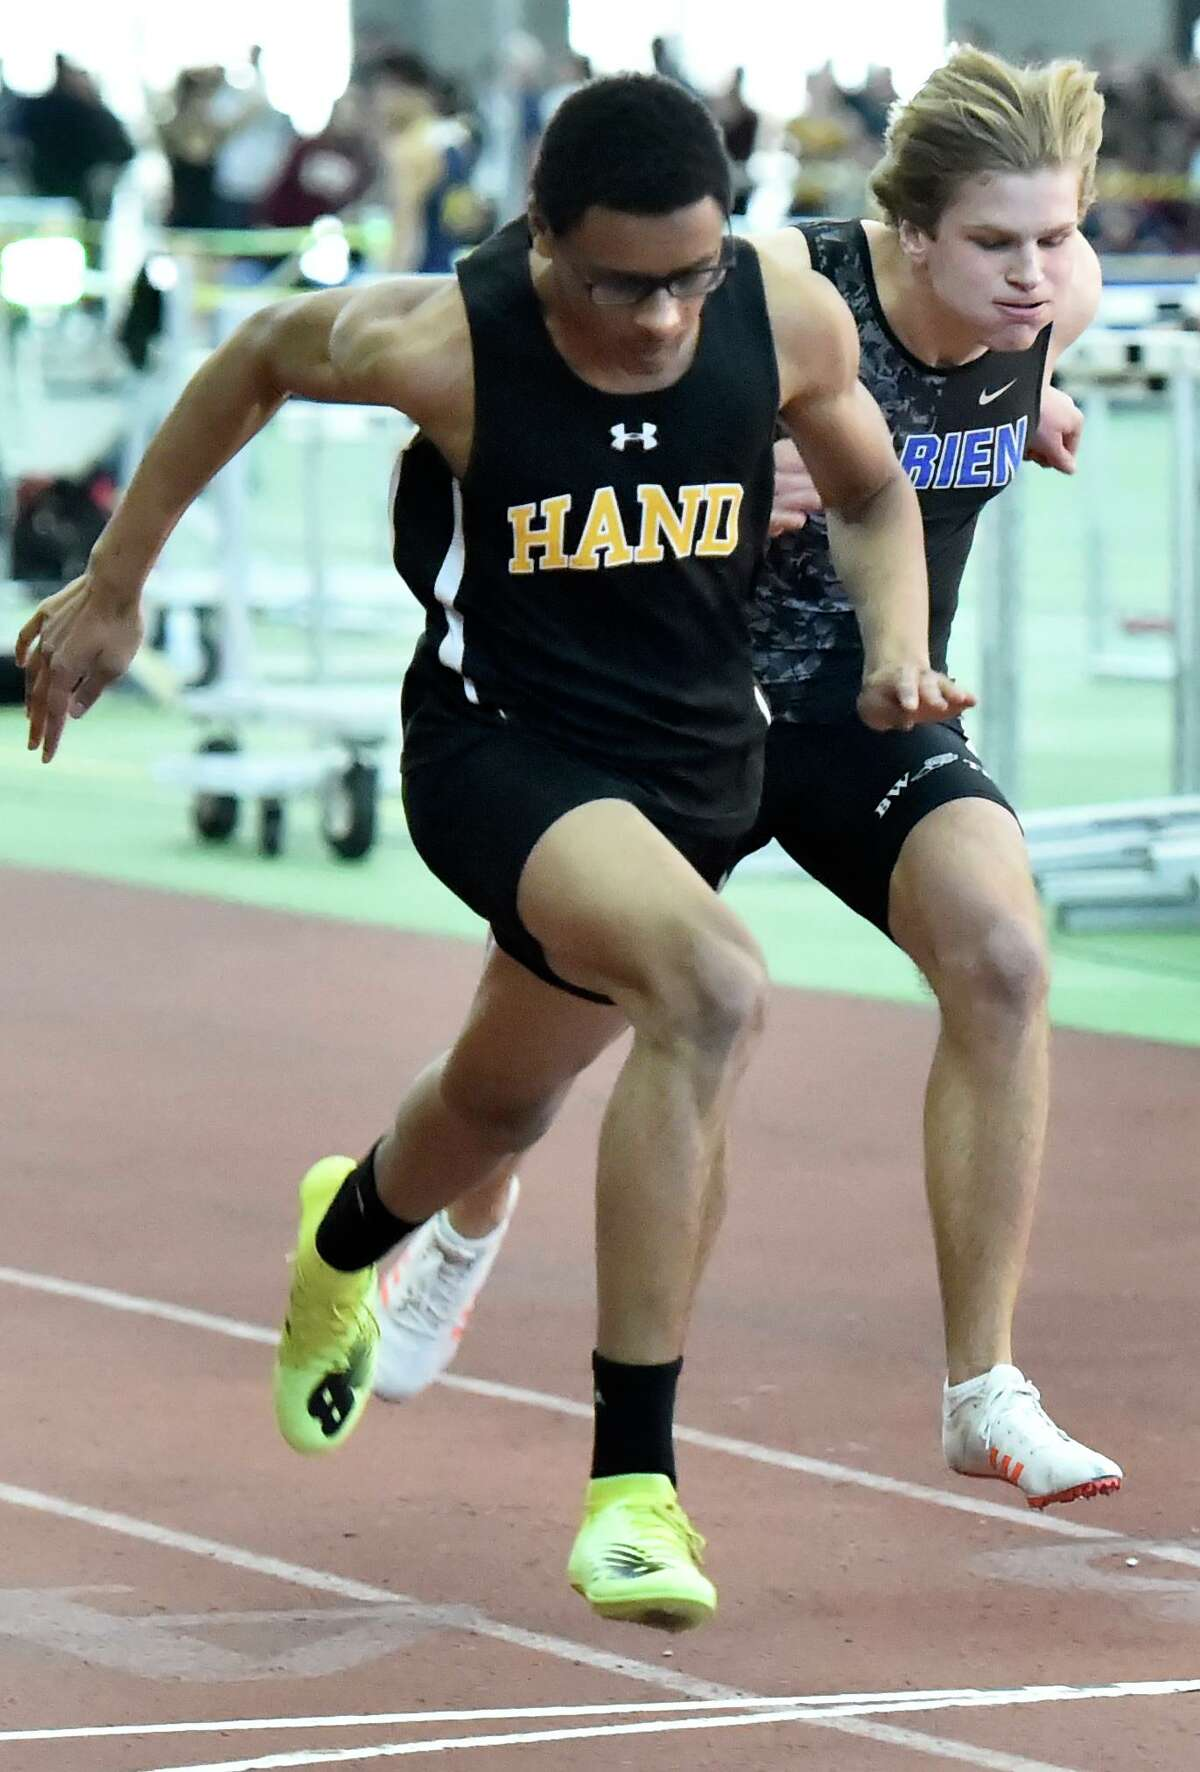 Hand's Joshua Stewart, left, edges out Darien's Nicholas Balenzano during the 55-meter dash preliminaries of the Class L track championship on Saturday.